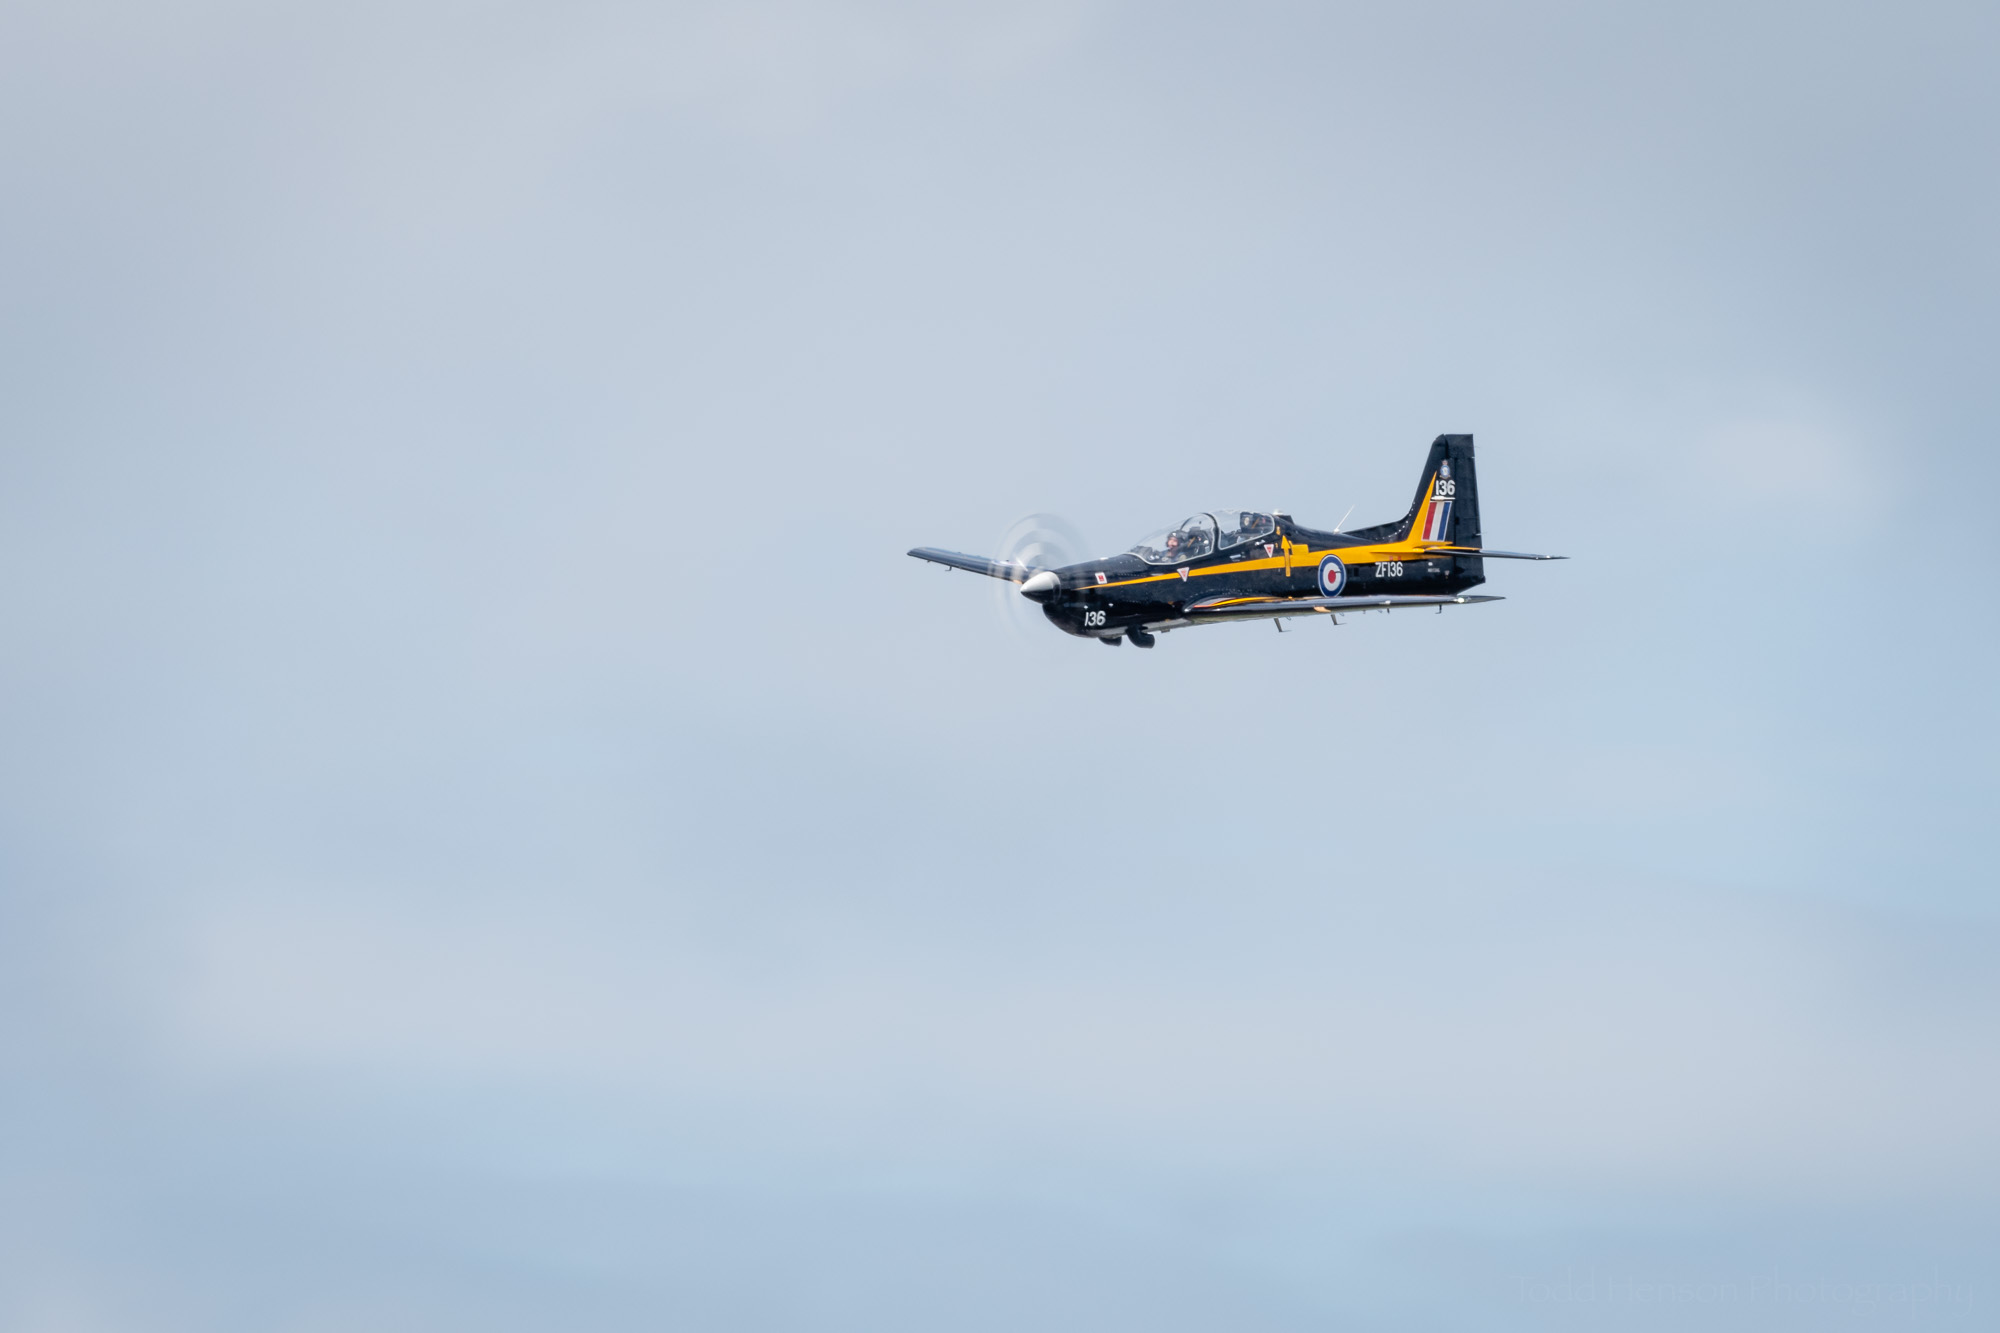 Lee Leet flying his Super Tucano.